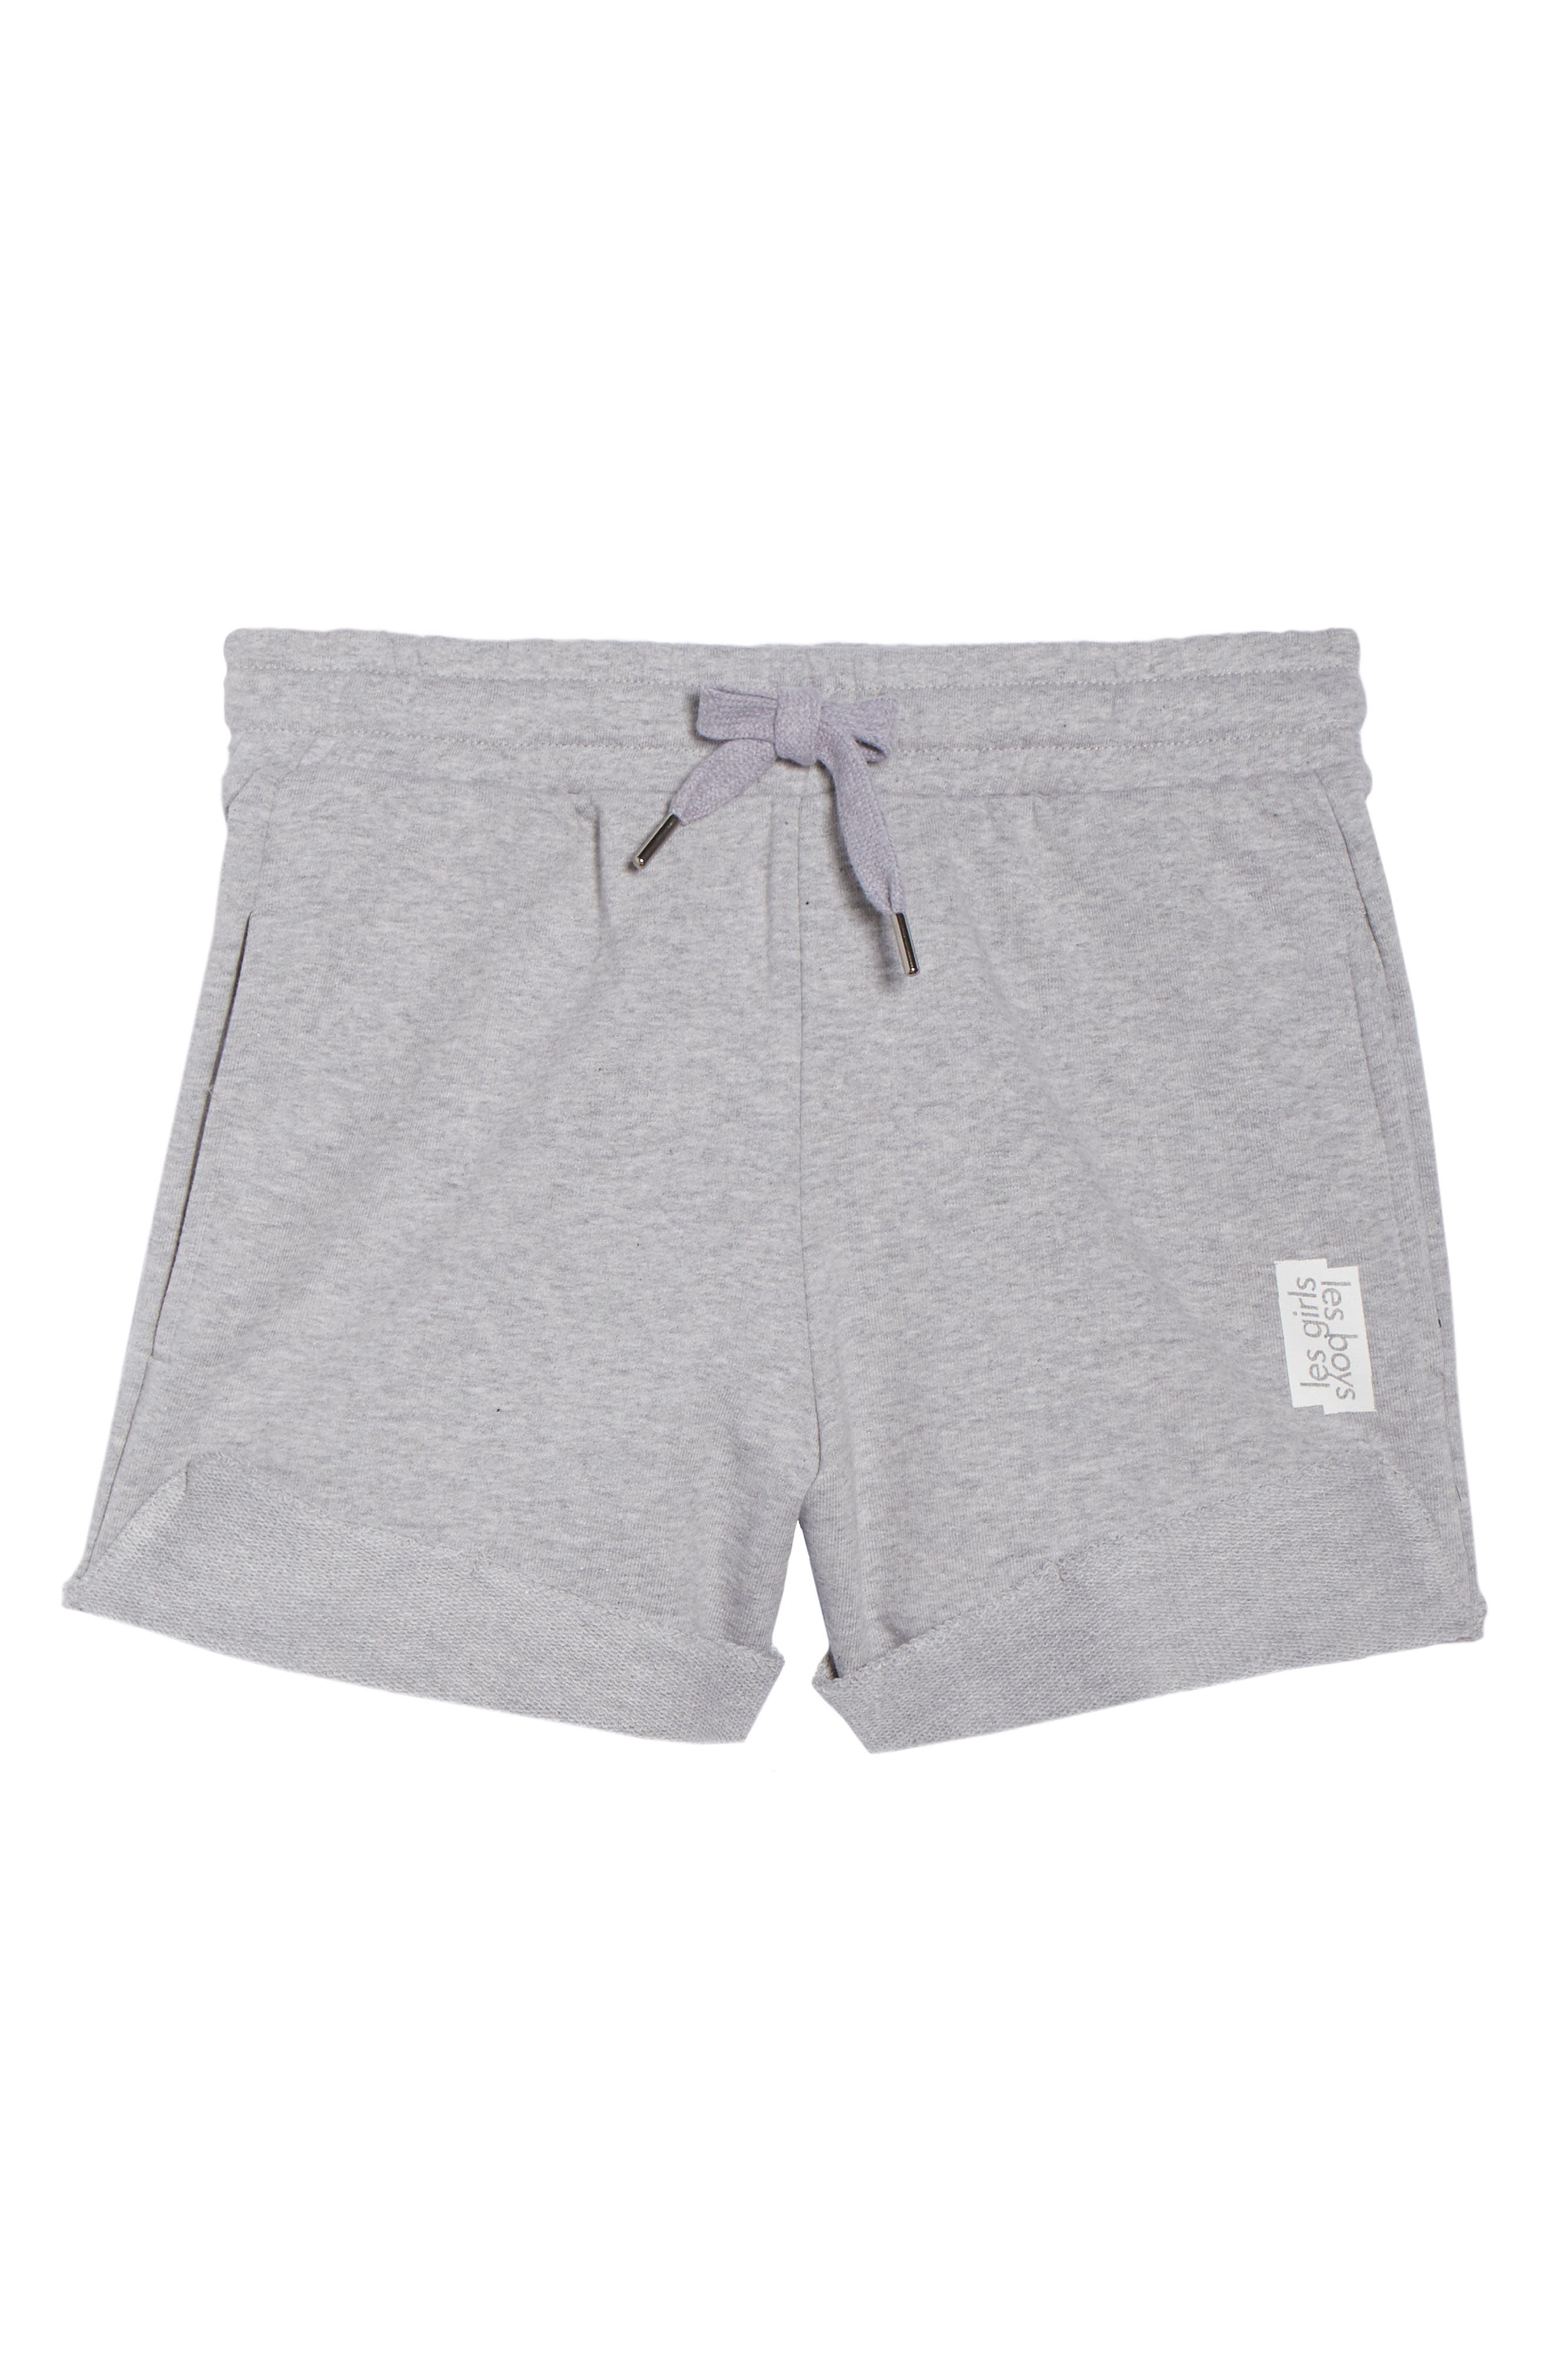 French Terry High Waist Shorts,                             Alternate thumbnail 6, color,                             020